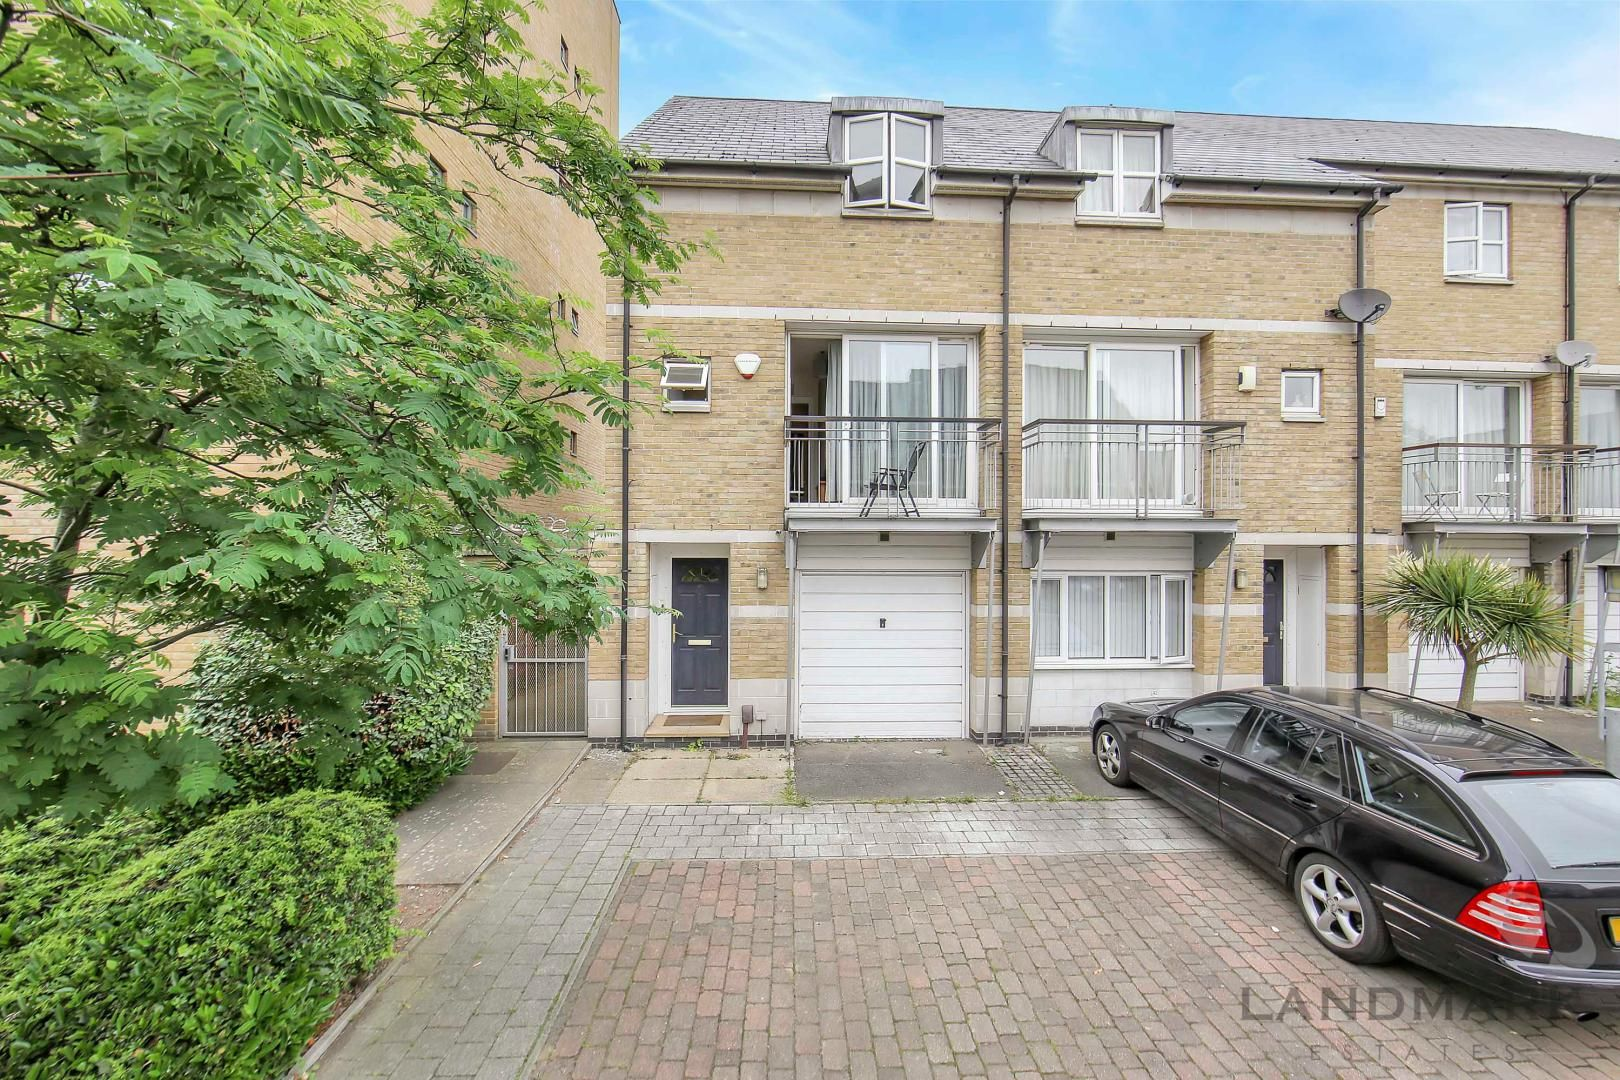 4 bed house to rent in Bering Square, E14